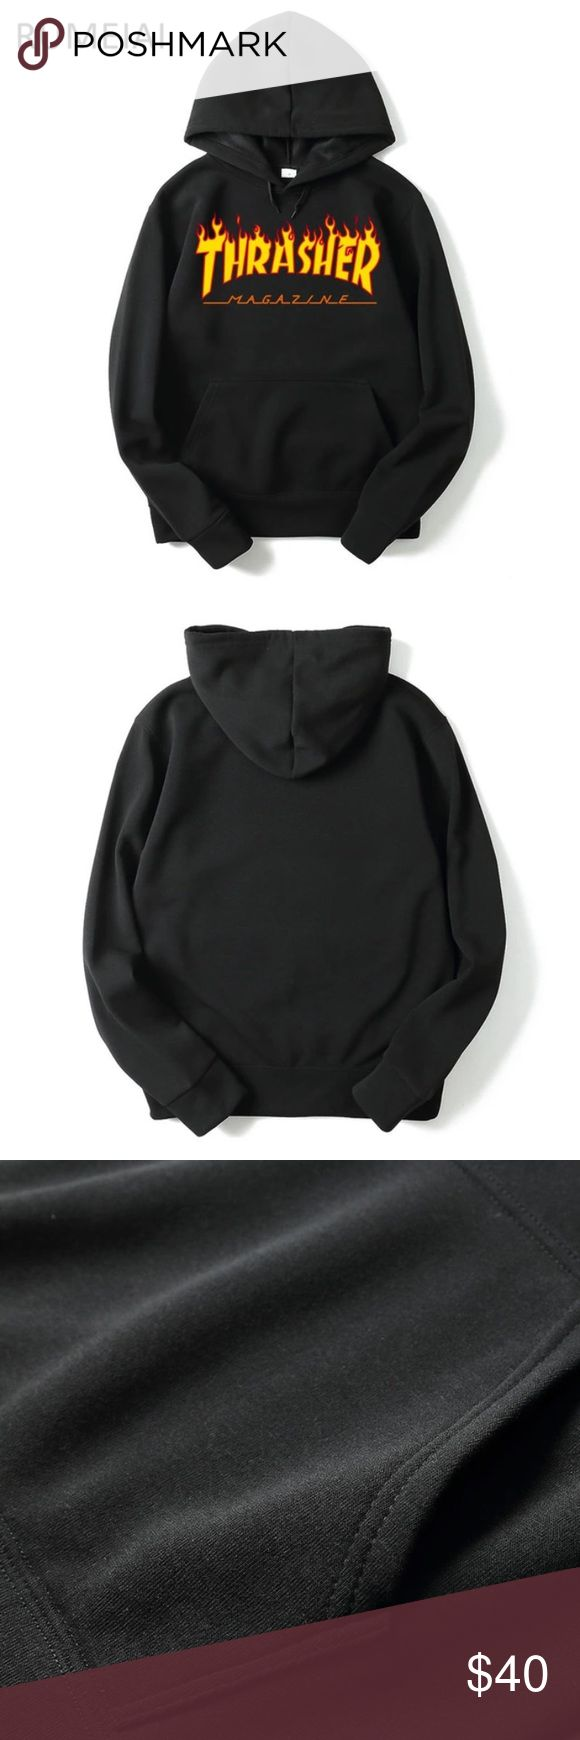 Thrasher hoodie sweatshirt UNISEX Brand new! Ordered the wrong size, so getting another one. Not the real thing but I don't see a difference :). UNISEX. supreme Sweaters